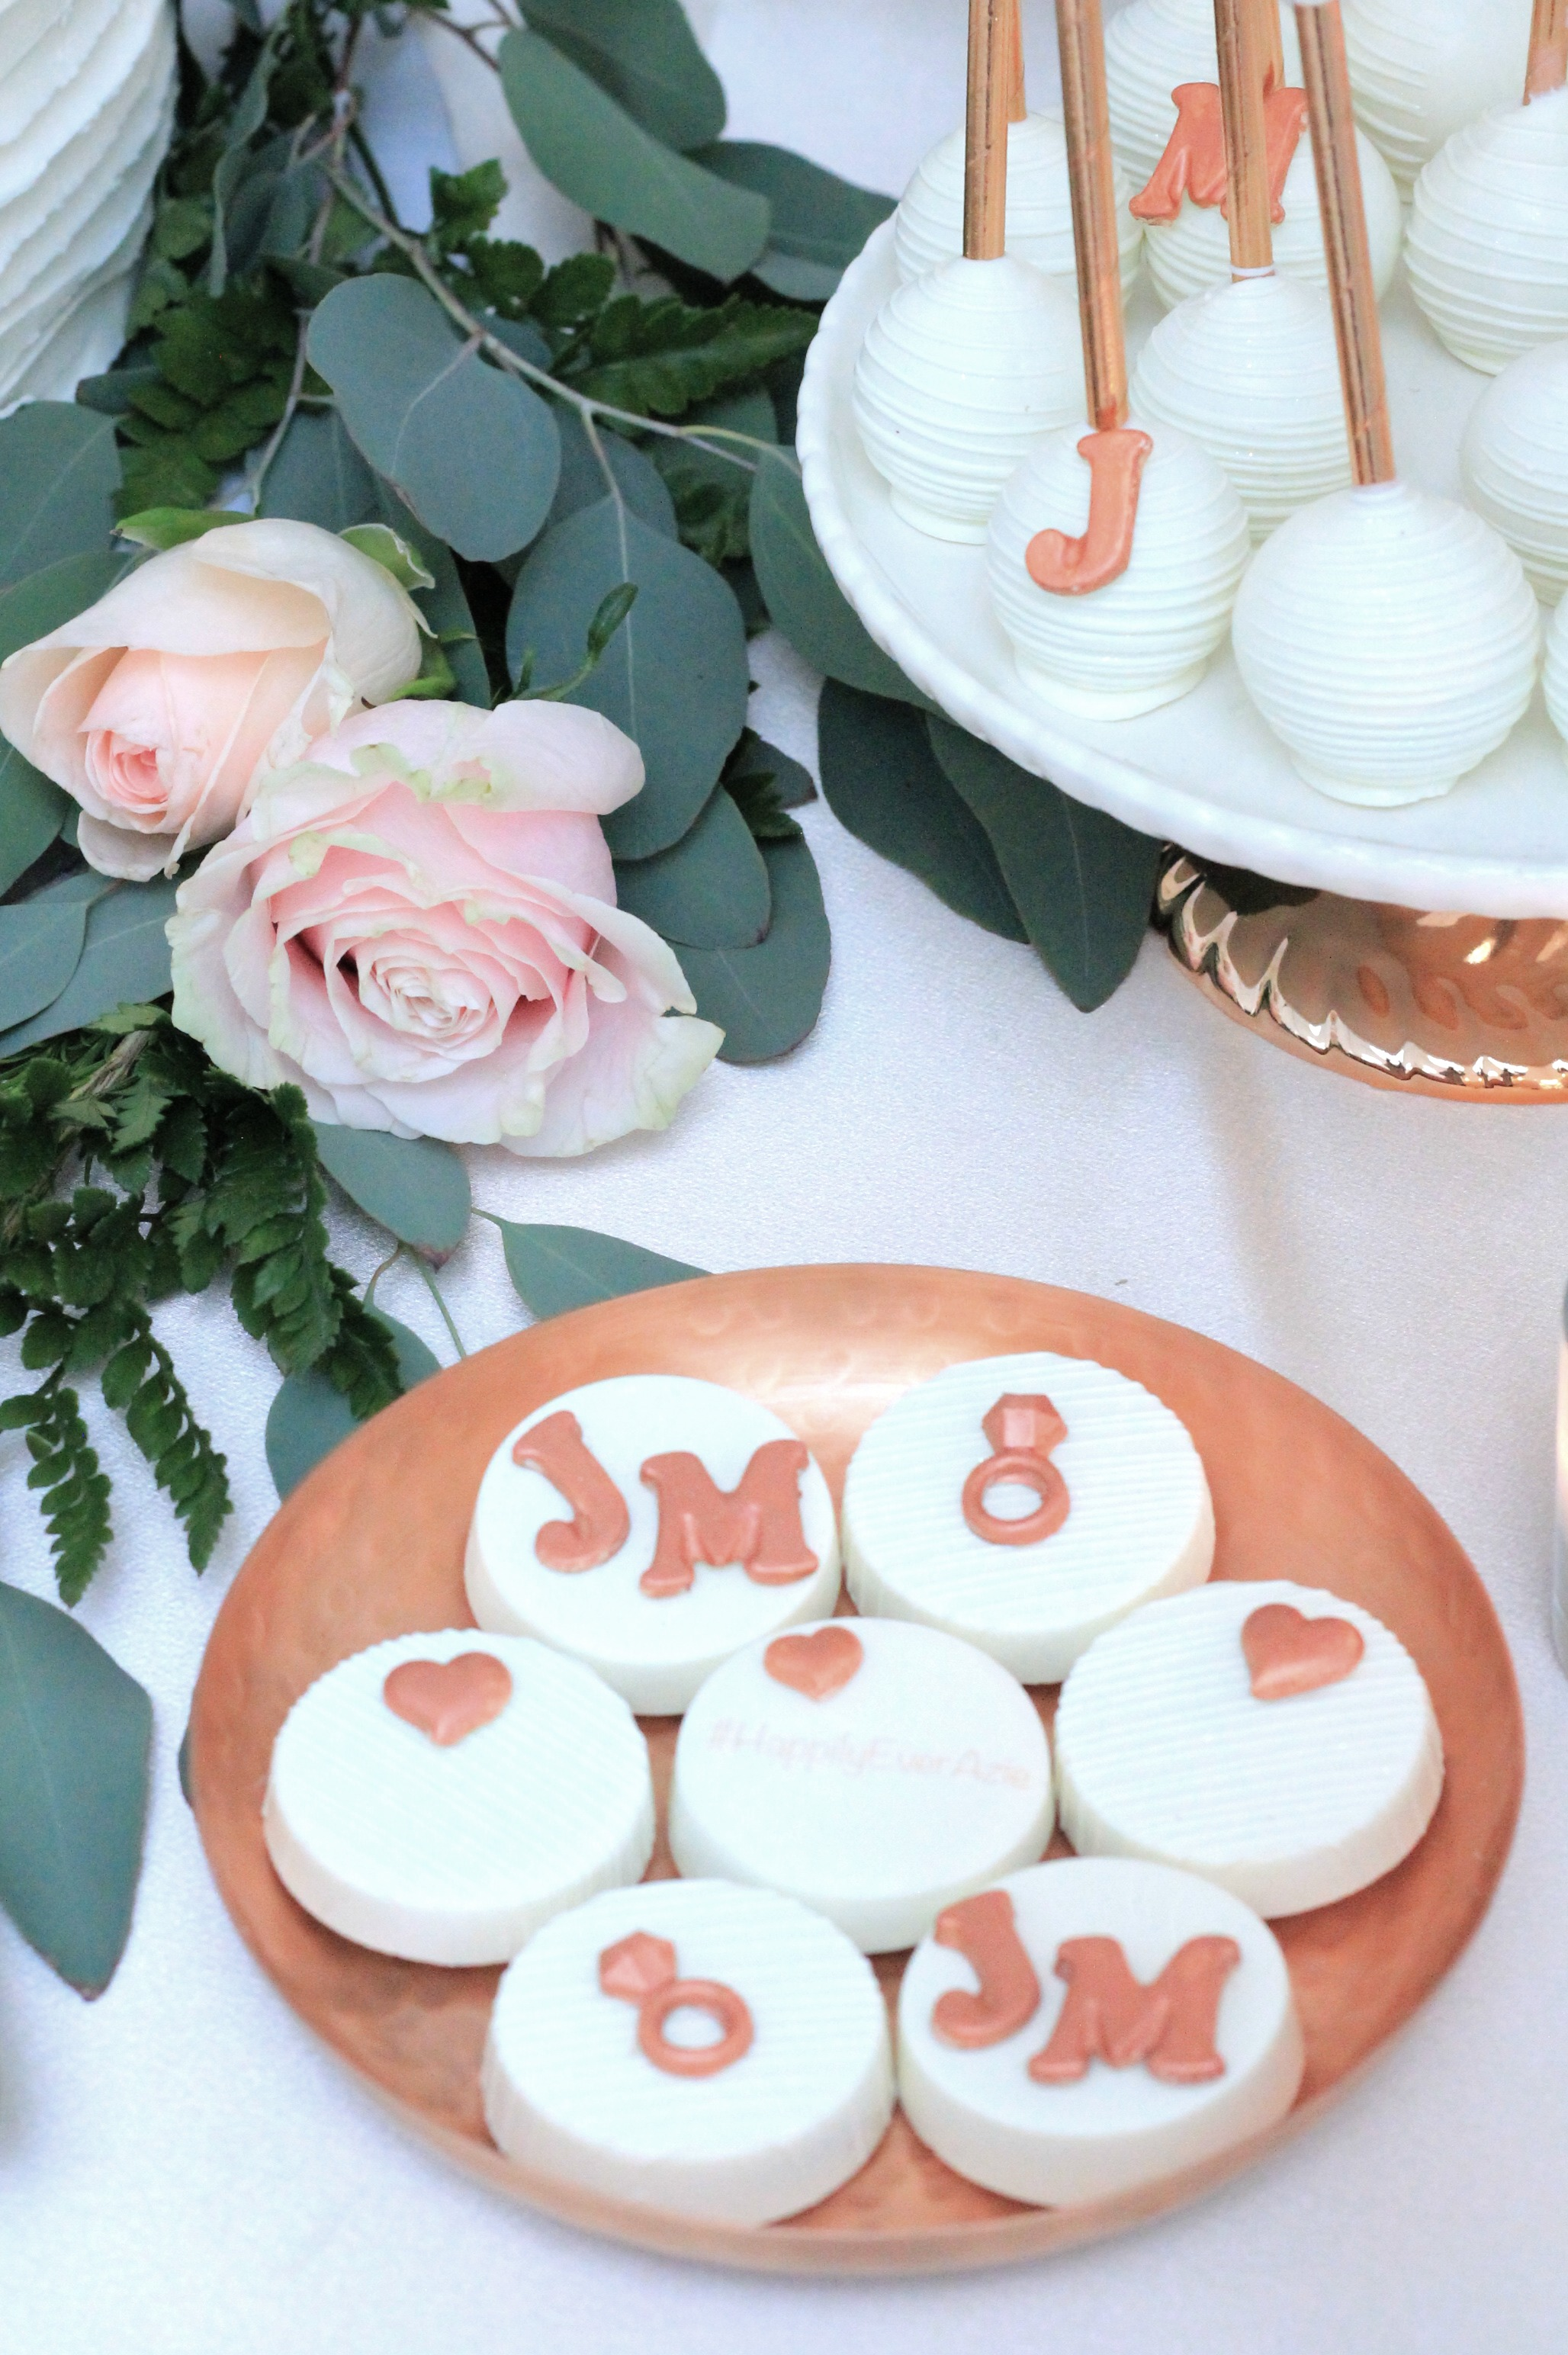 engagement party-copper wedding-rose gold wedding-Wedding Dessert Table-Rose Gold Dessert Ideas-Engagement Party Dessert Table-www.SugarPartiesLA.com.jpg